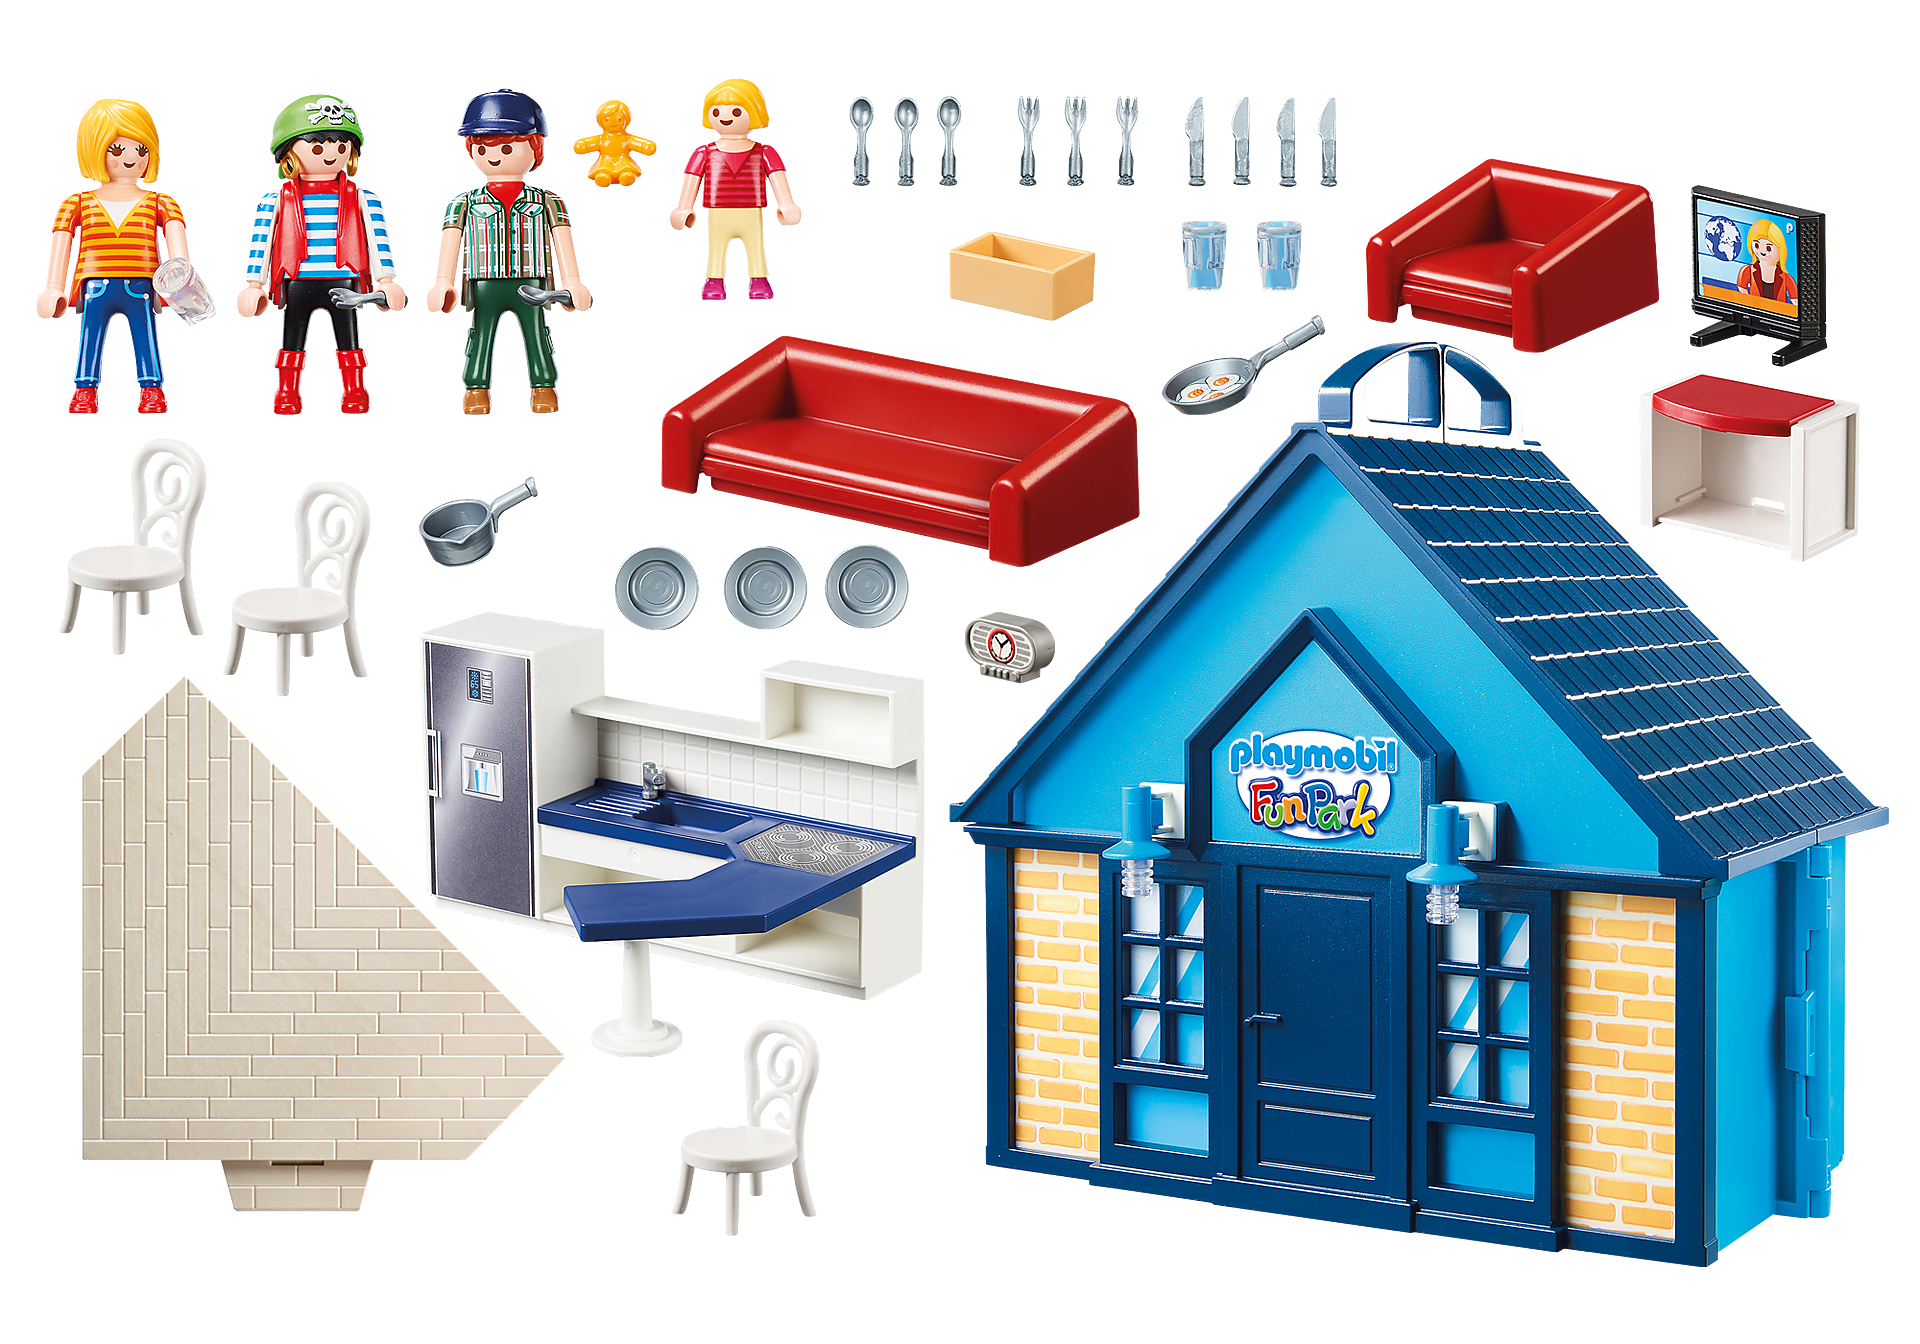 70219 PLAYMOBIL-FunPark Summerhouse Playbox zoom image3